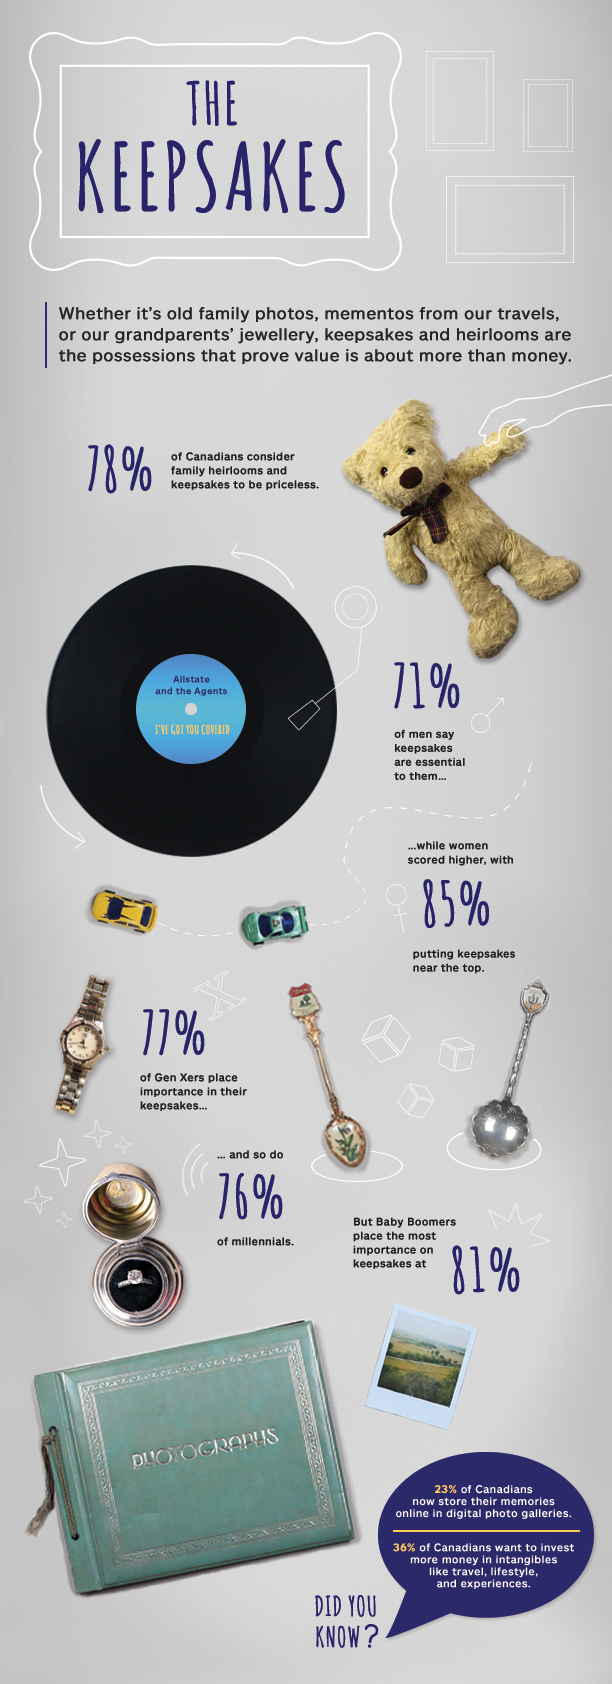 What Canadians Value Most: Keepsakes - Most Valuable Possessions survey by Allstate Canada